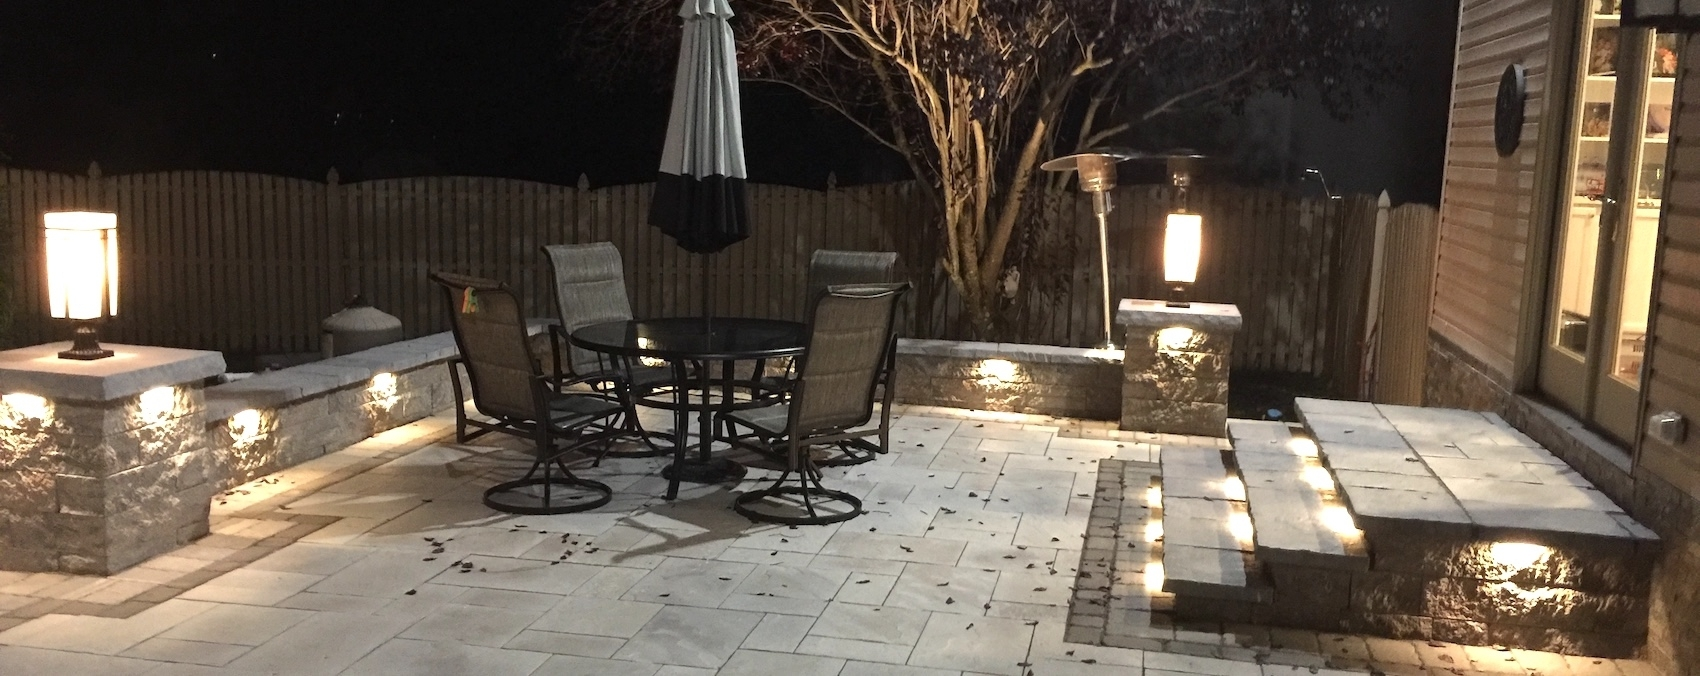 Led Landscape Lighting Nj | Hardscape Lighting For Patios, Pools with Outdoor Driveway Lanterns (Image 8 of 20)